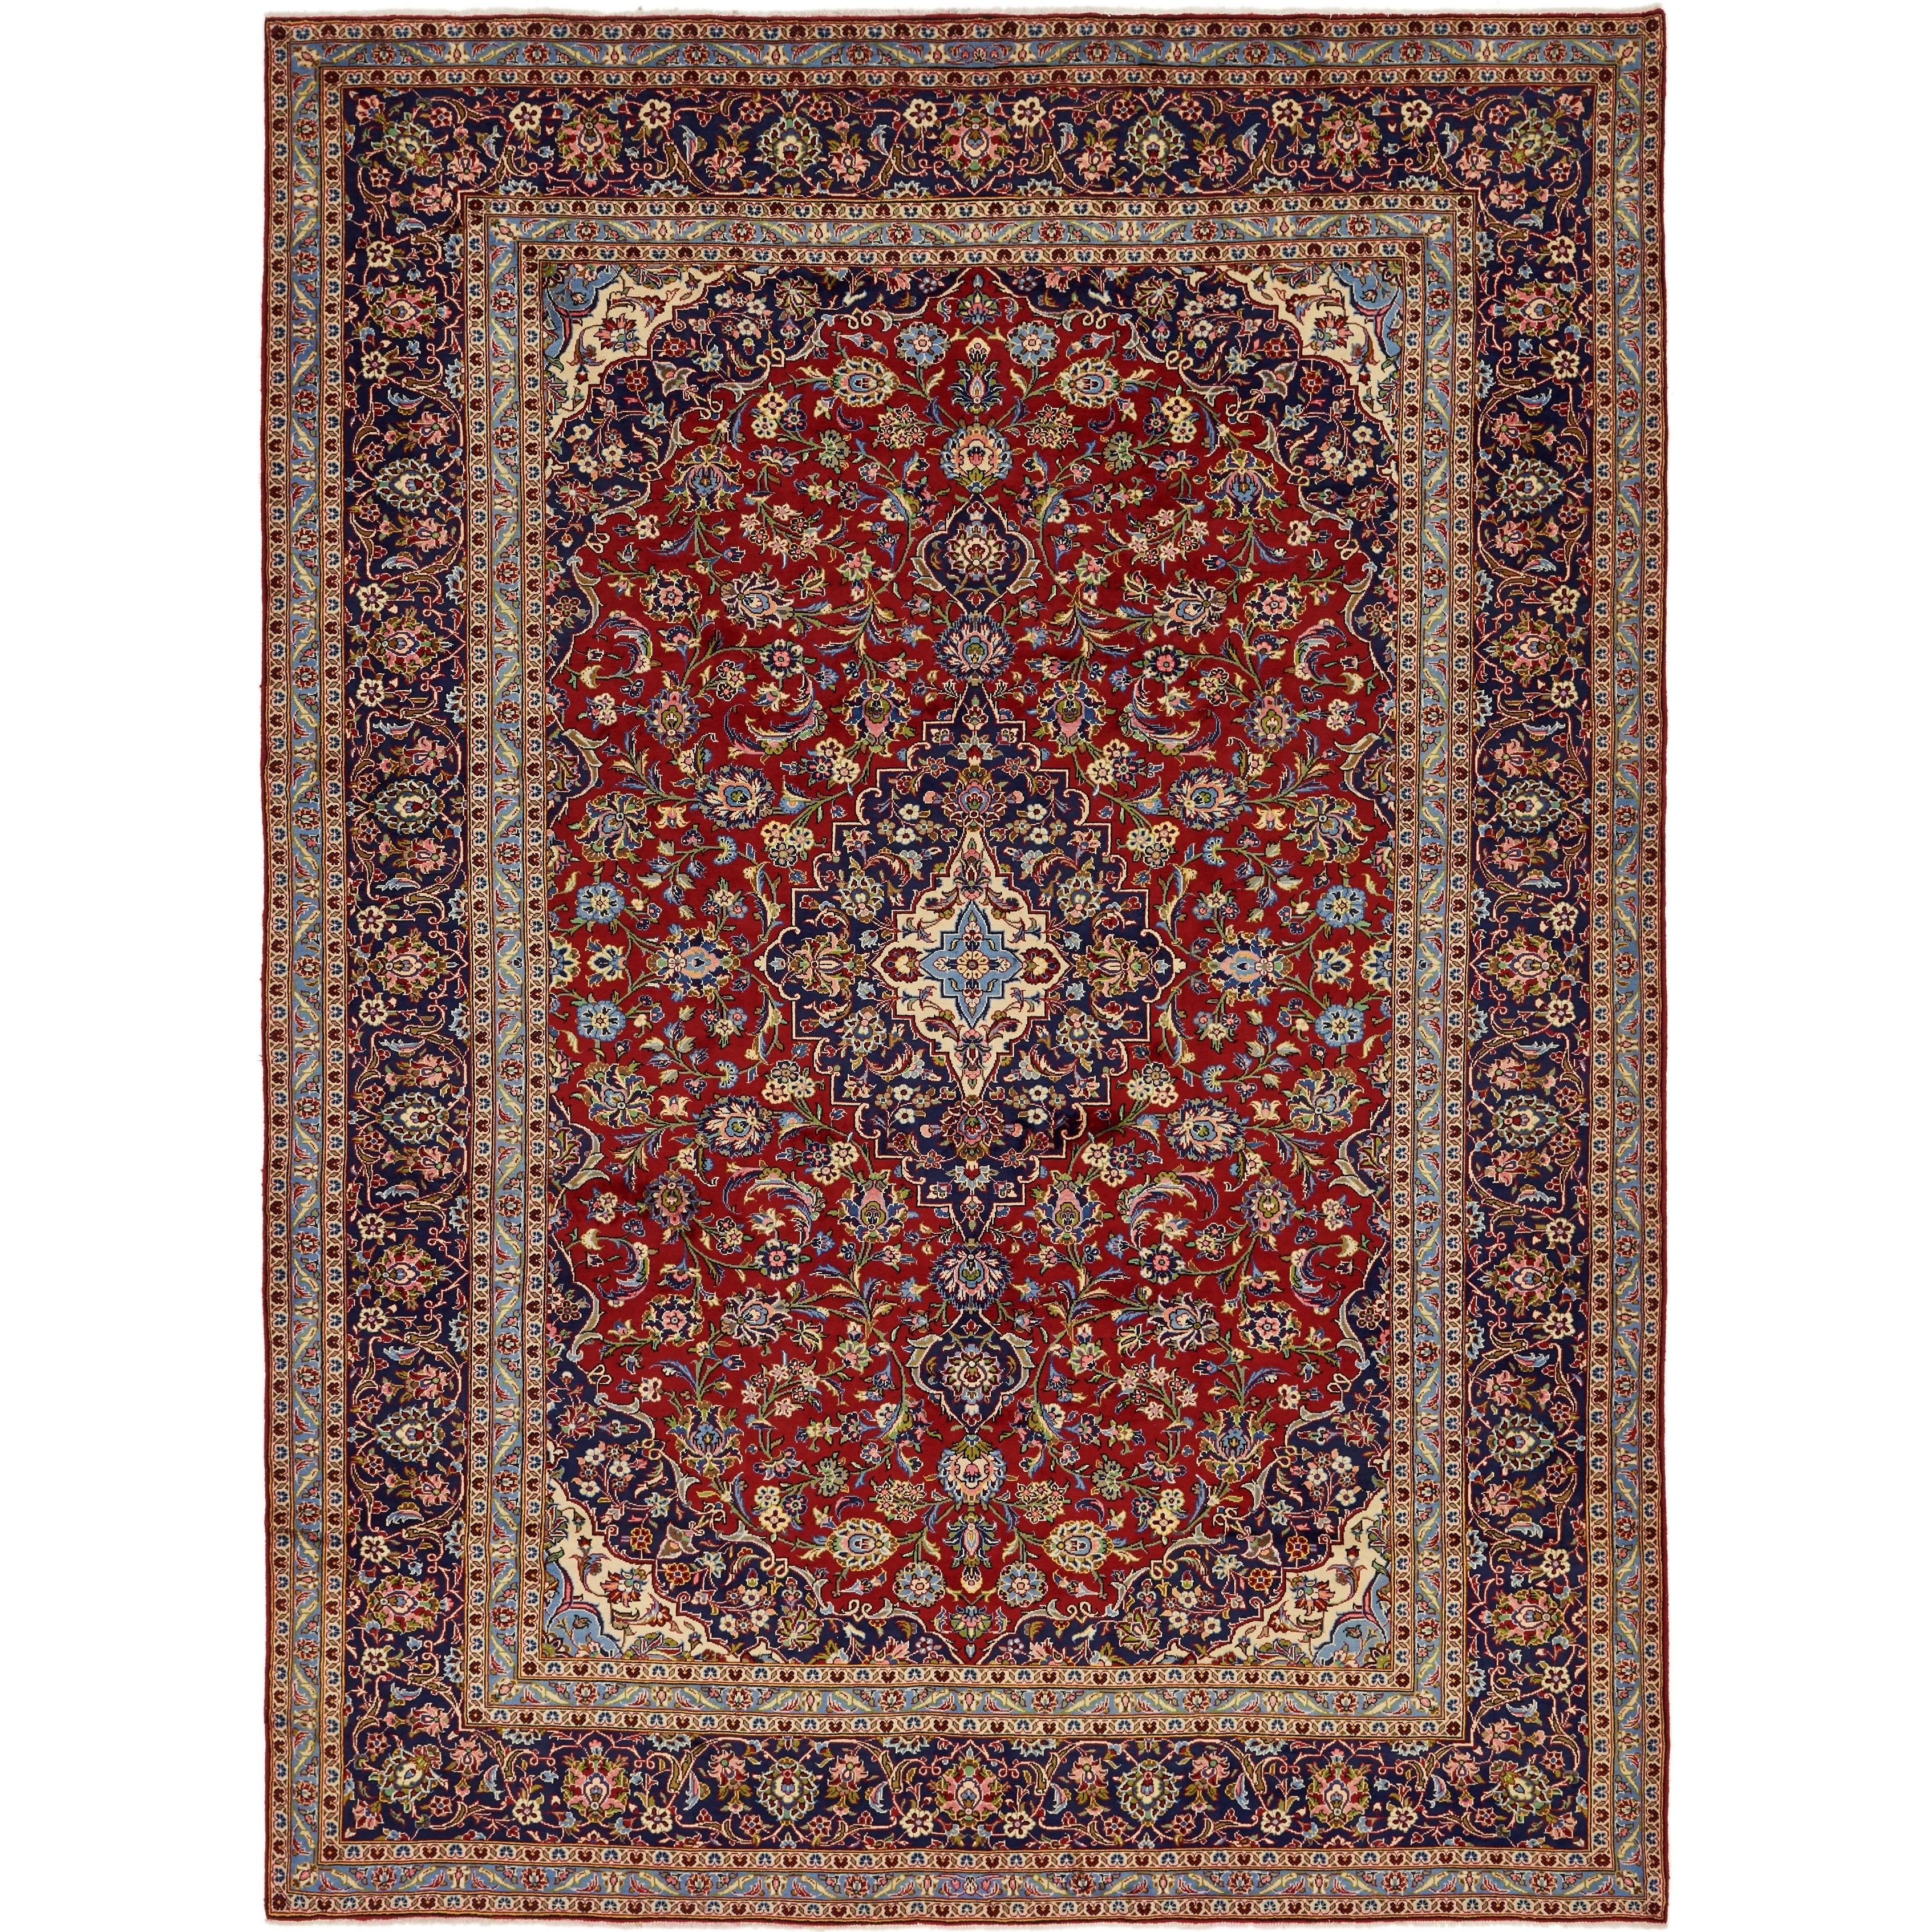 Hand Knotted Kashan Semi Antique Wool Area Rug - 9 7 x 13 2 (Red - 9 7 x 13 2)